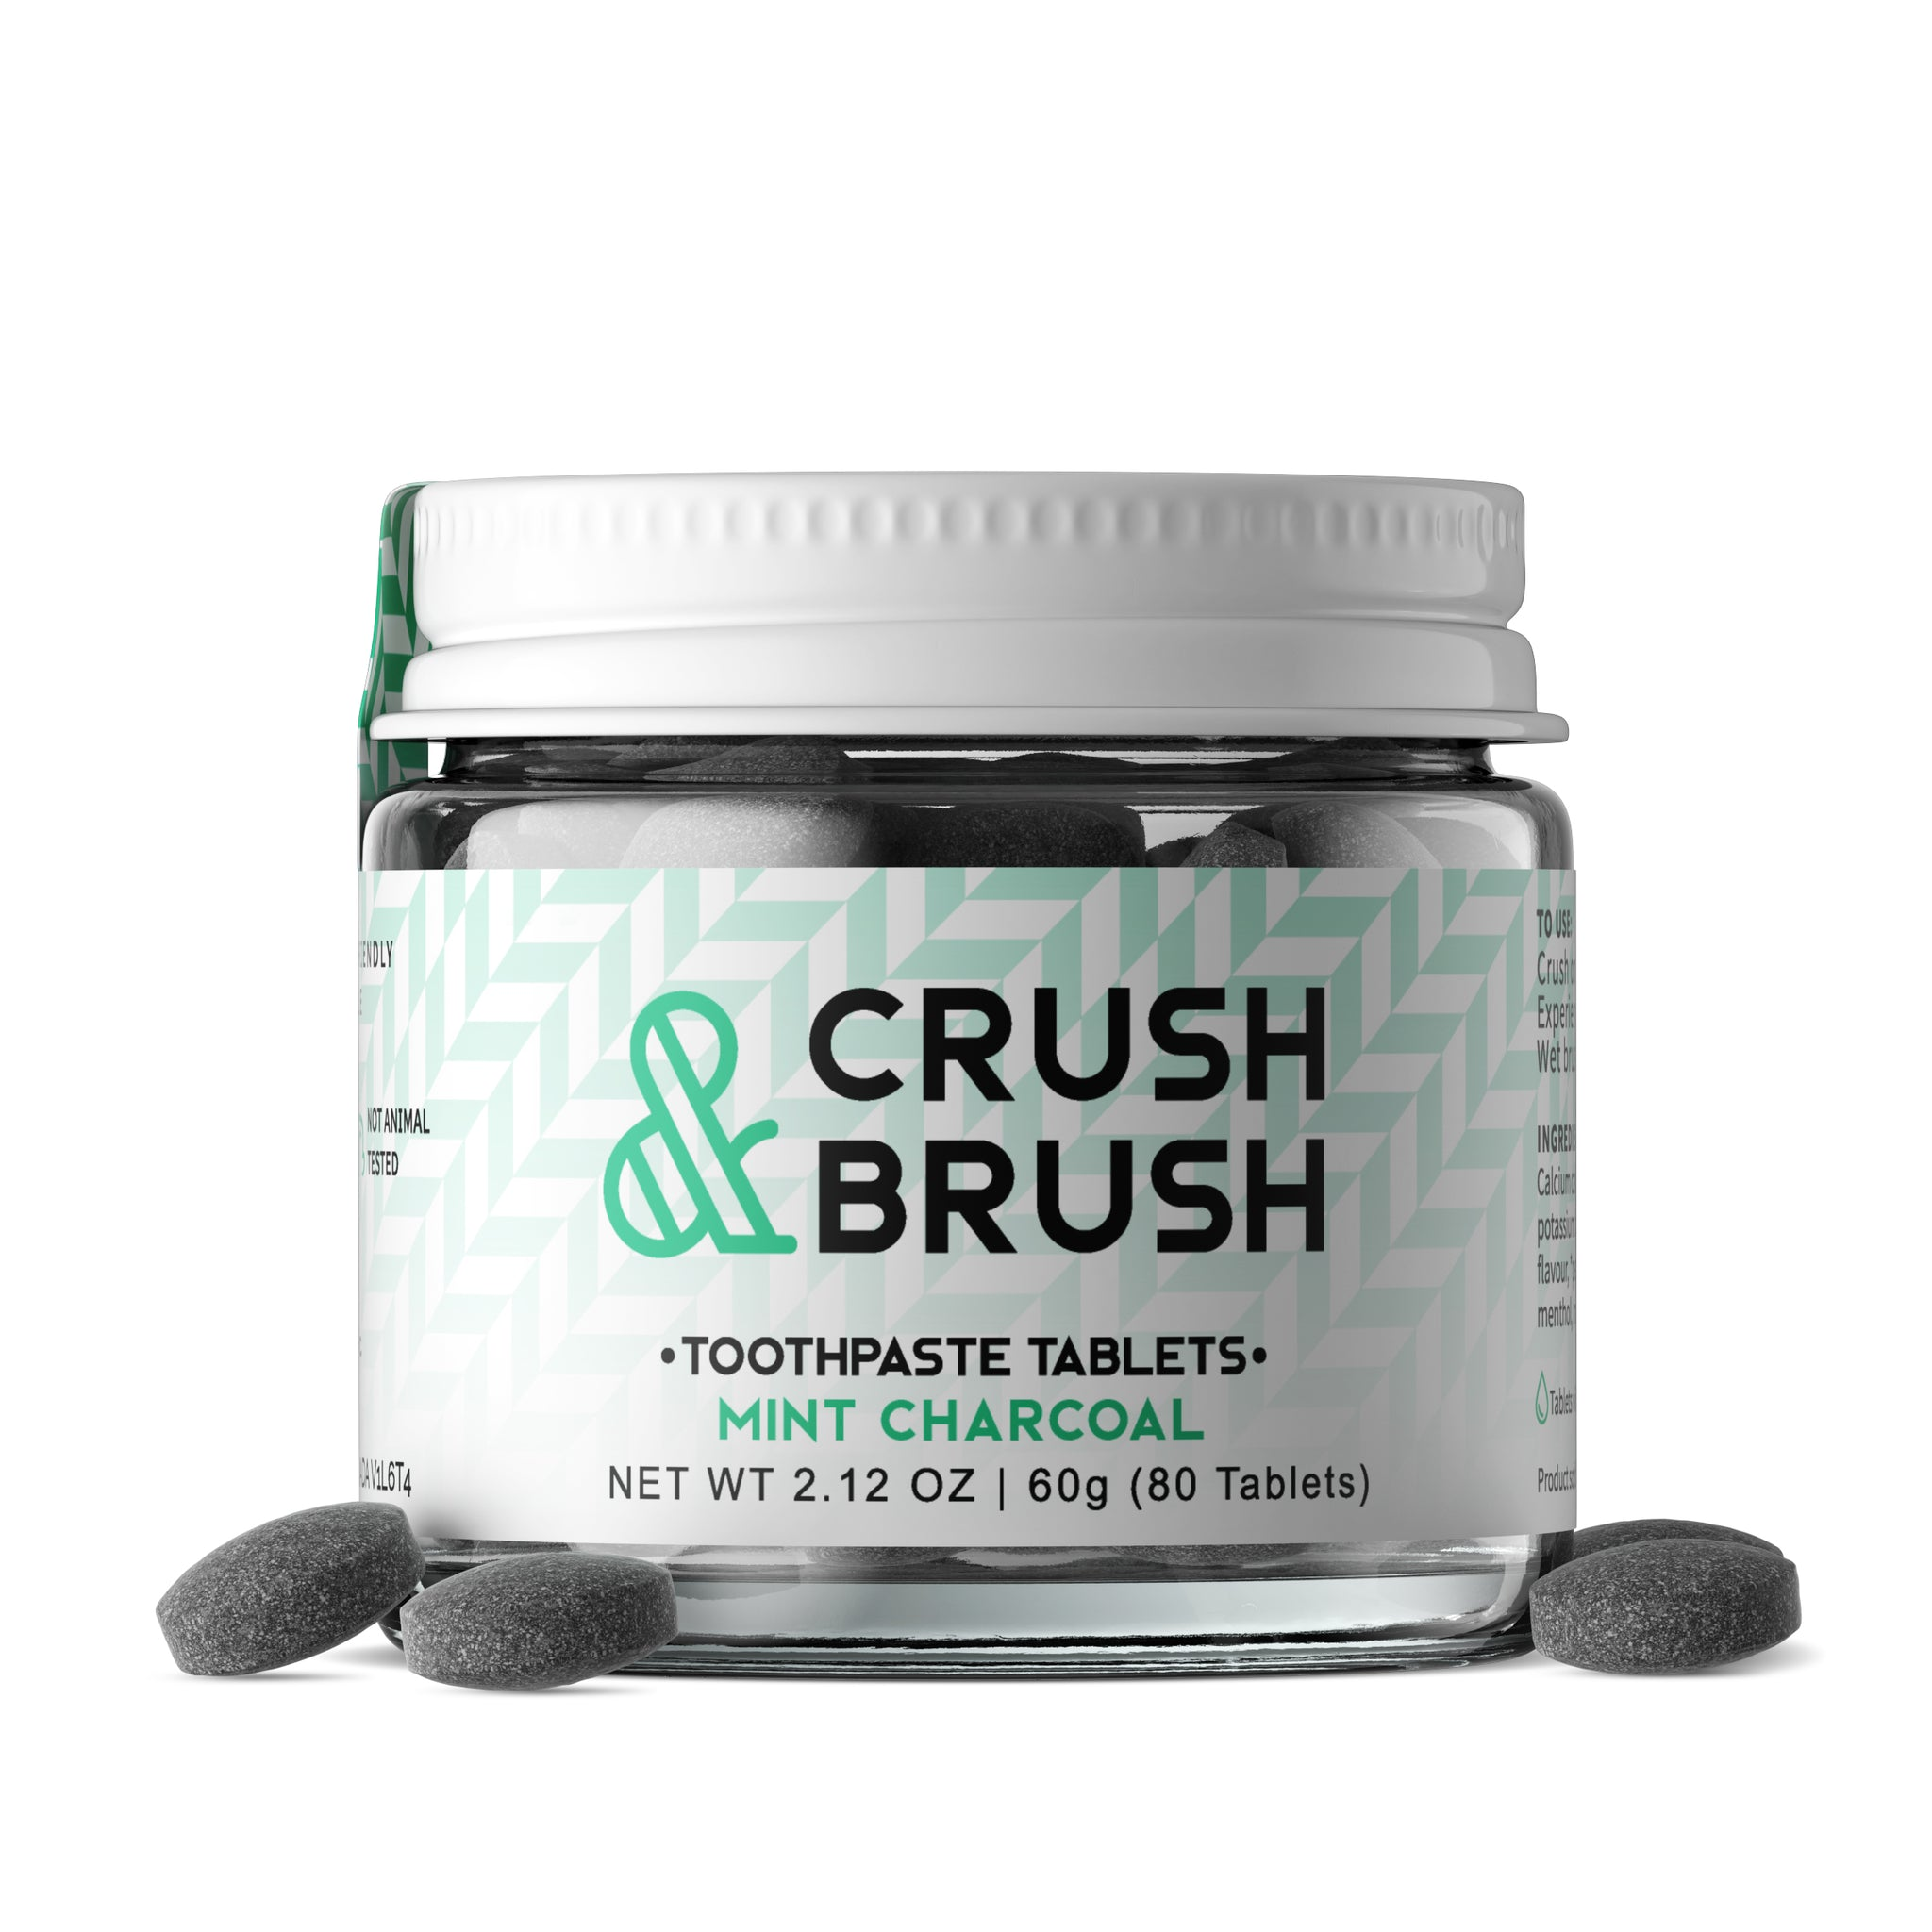 Crush & Brush Mint CHARCOAL GLASS JAR - 60g ~ 80 Tablets